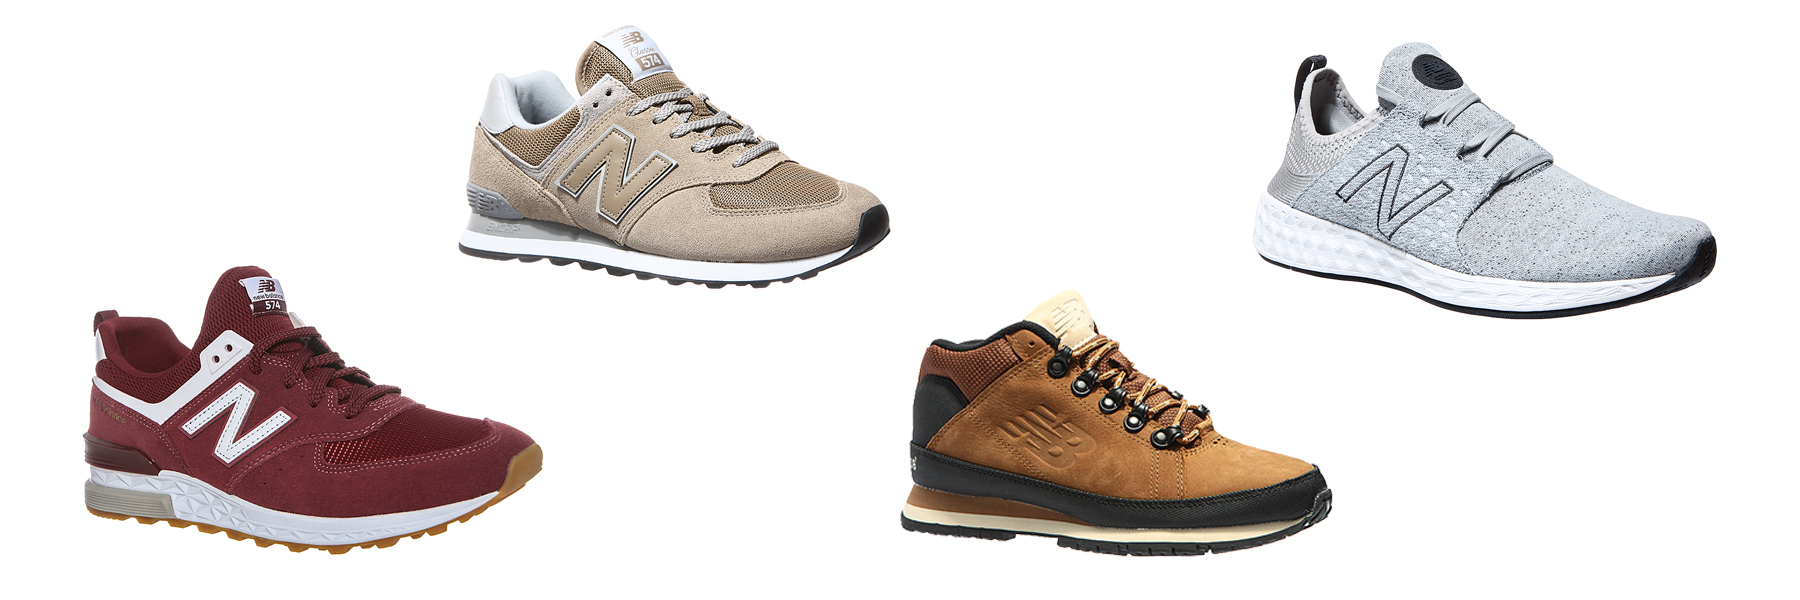 Header_New-Balance_SALE_1800x600.jpg